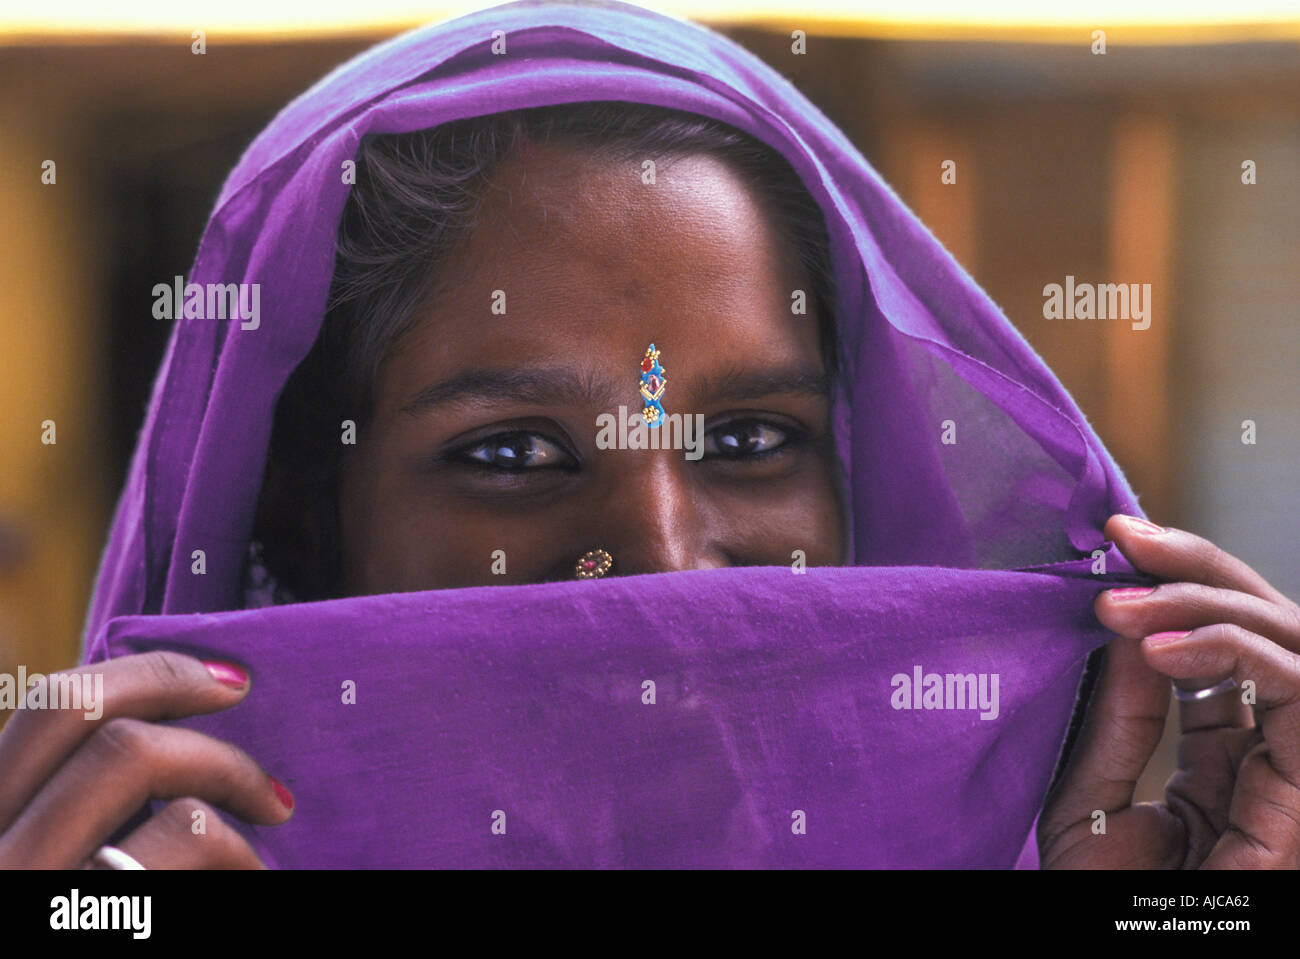 Friendly Hindu woman from Uttar Pradesh with purple headcloth veiling her smile India - Stock Image